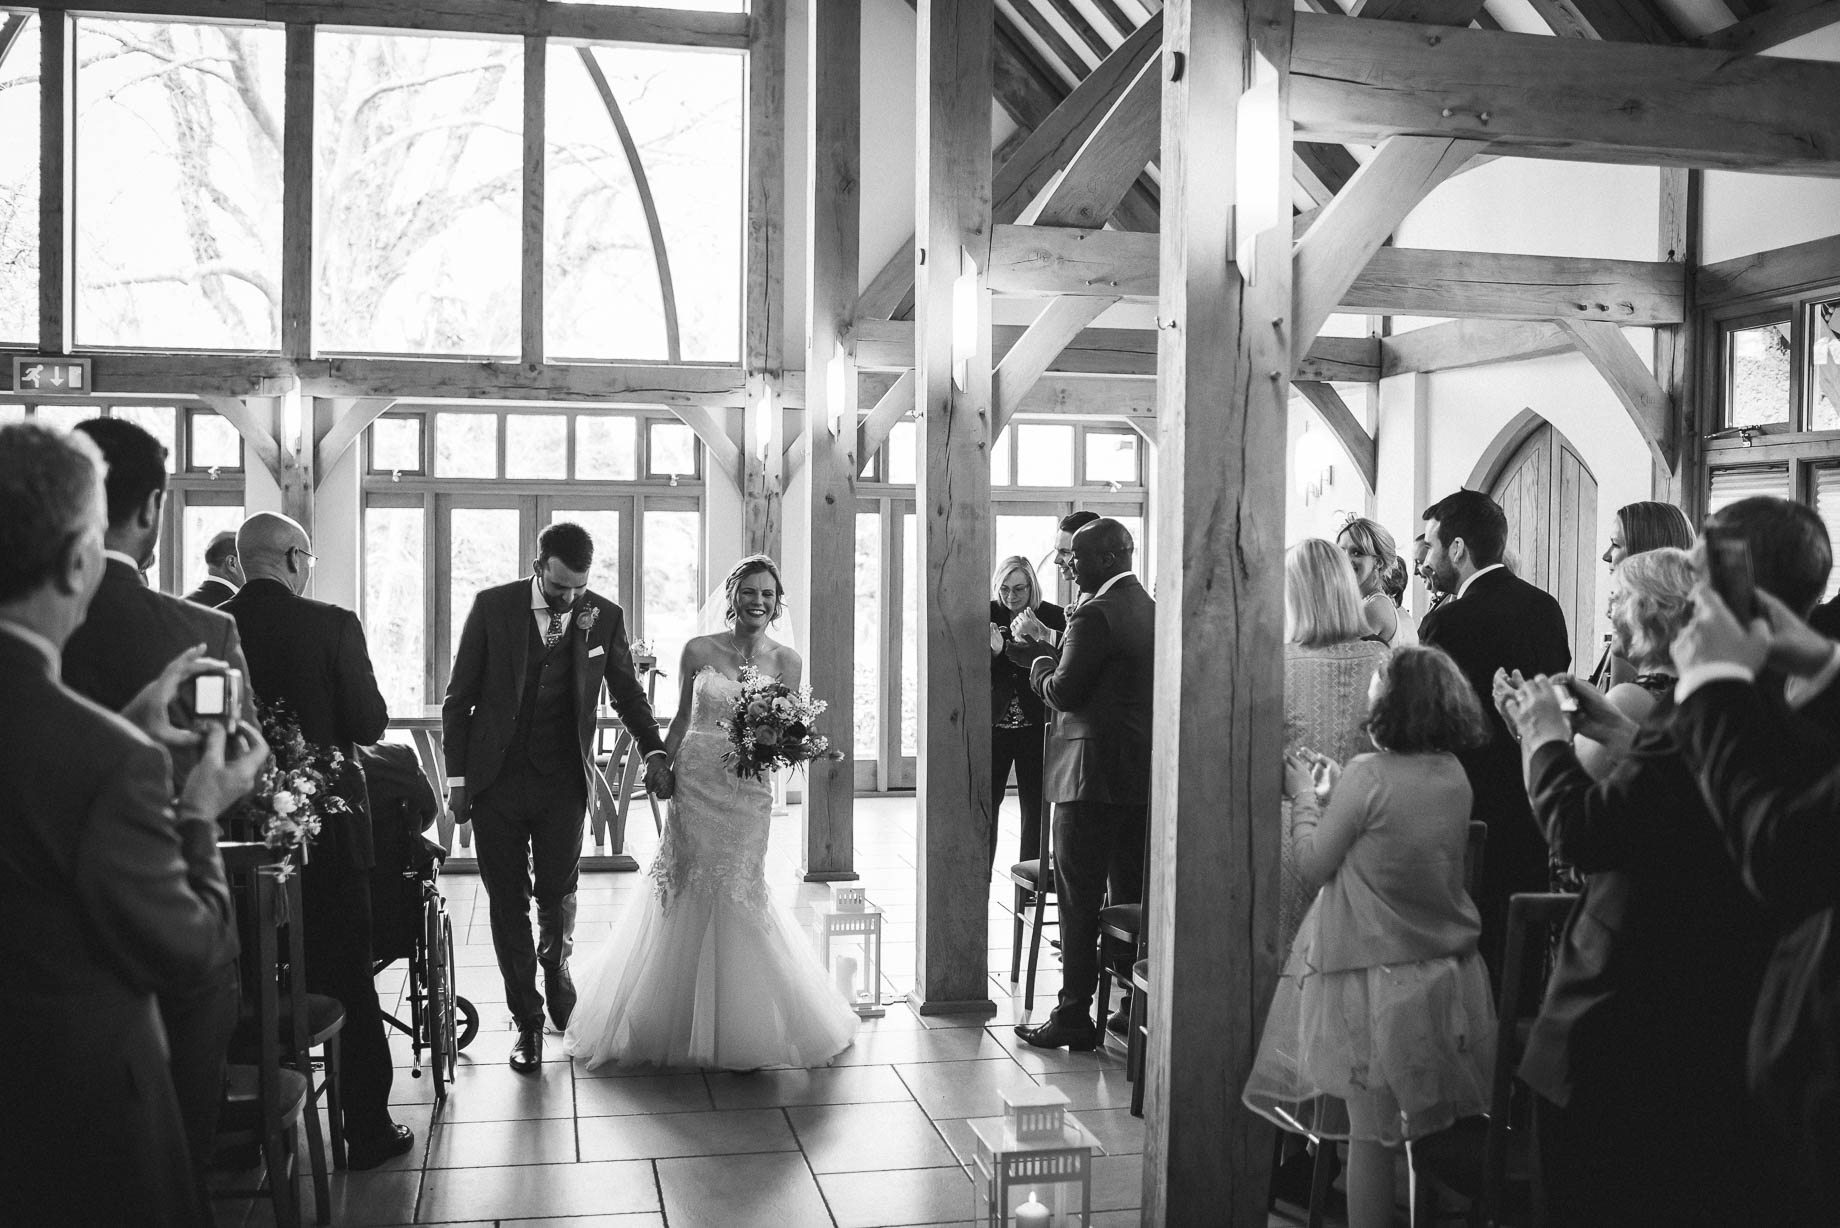 Rivervale Barn wedding photography by Guy Collier - Claire and Simon (62 of 133)